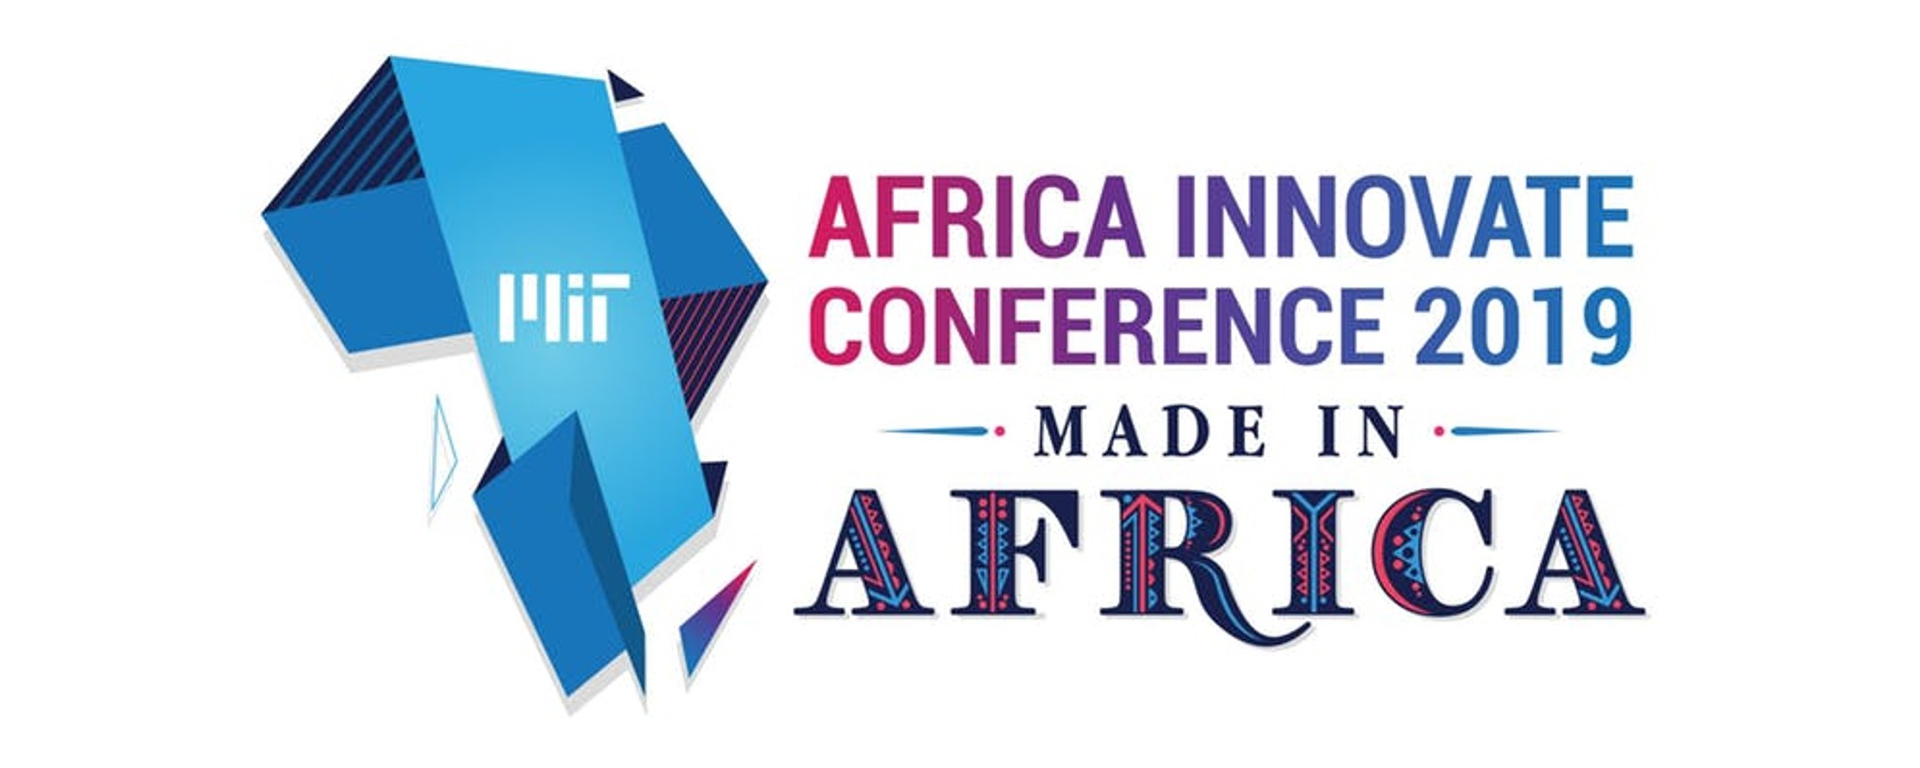 MIT Sloan Africa Business Club - MIT Africa Innovate Conference   Made in Africa Movemeback African event cover image